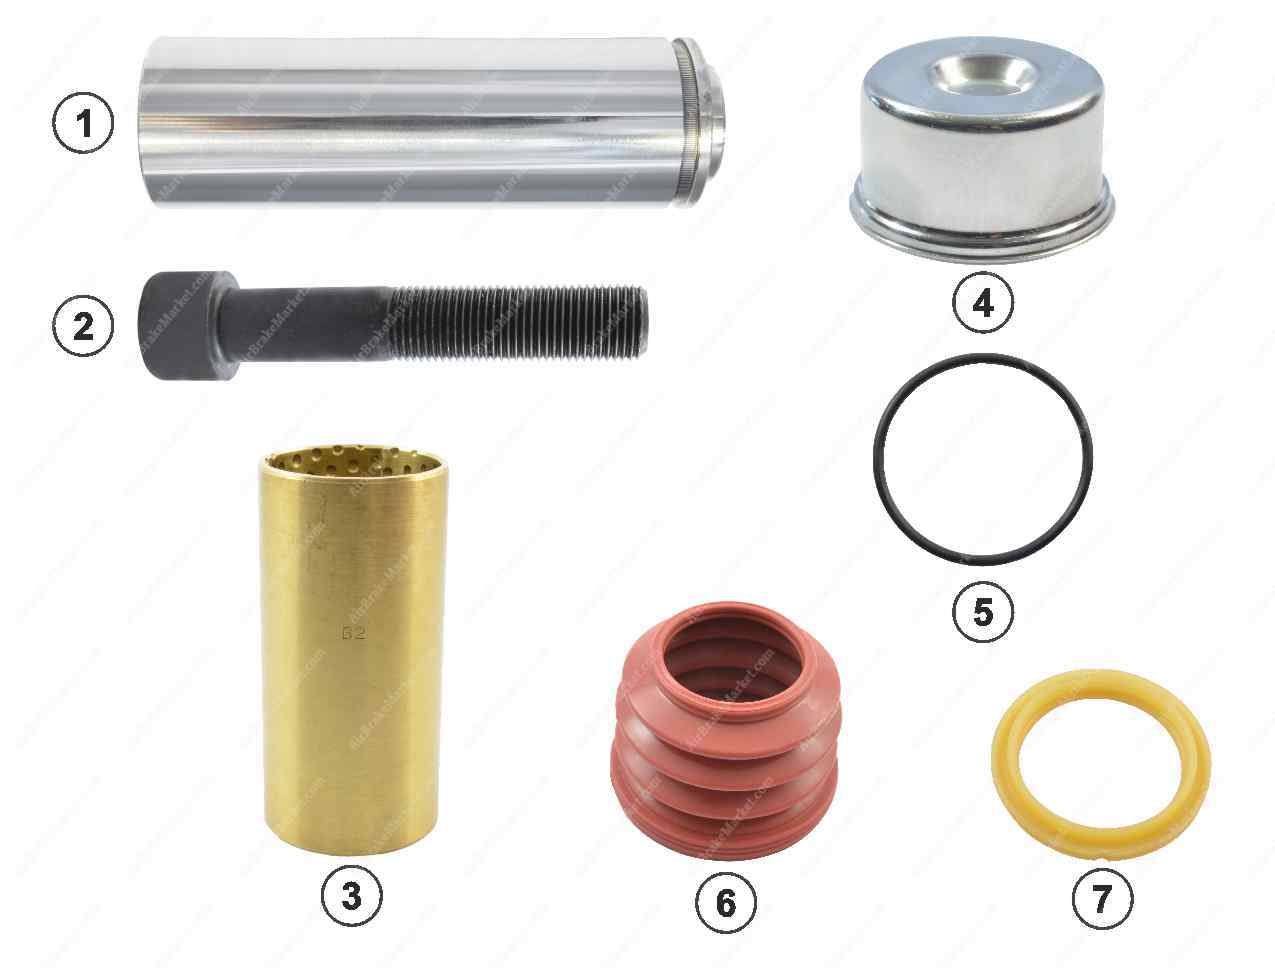 GK81011 Guide pin and seal kit SB6, SB7 Knorr-Bremse Caliper K000696, K004218, II310370066, 0024200383, 3434380500, 0980102970